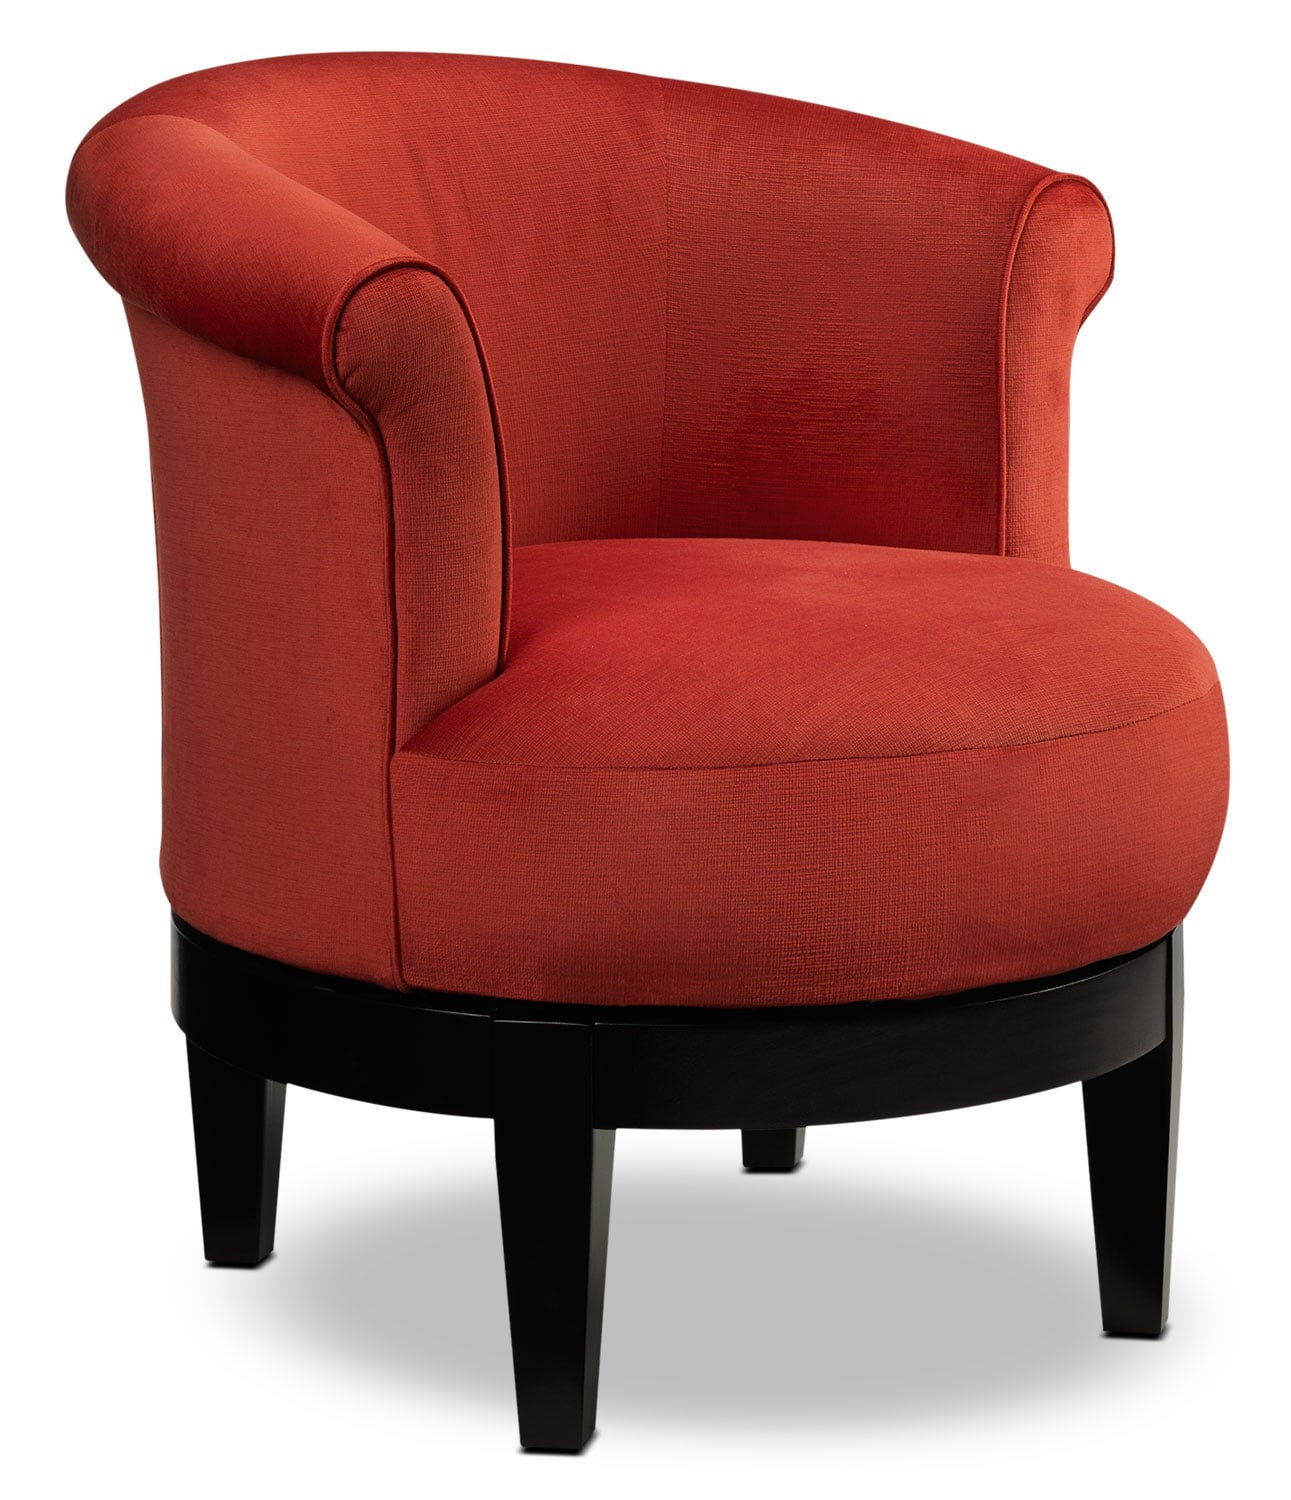 Kalosa Swivel Accent Chair: Attica Swivel Accent Chair - Red